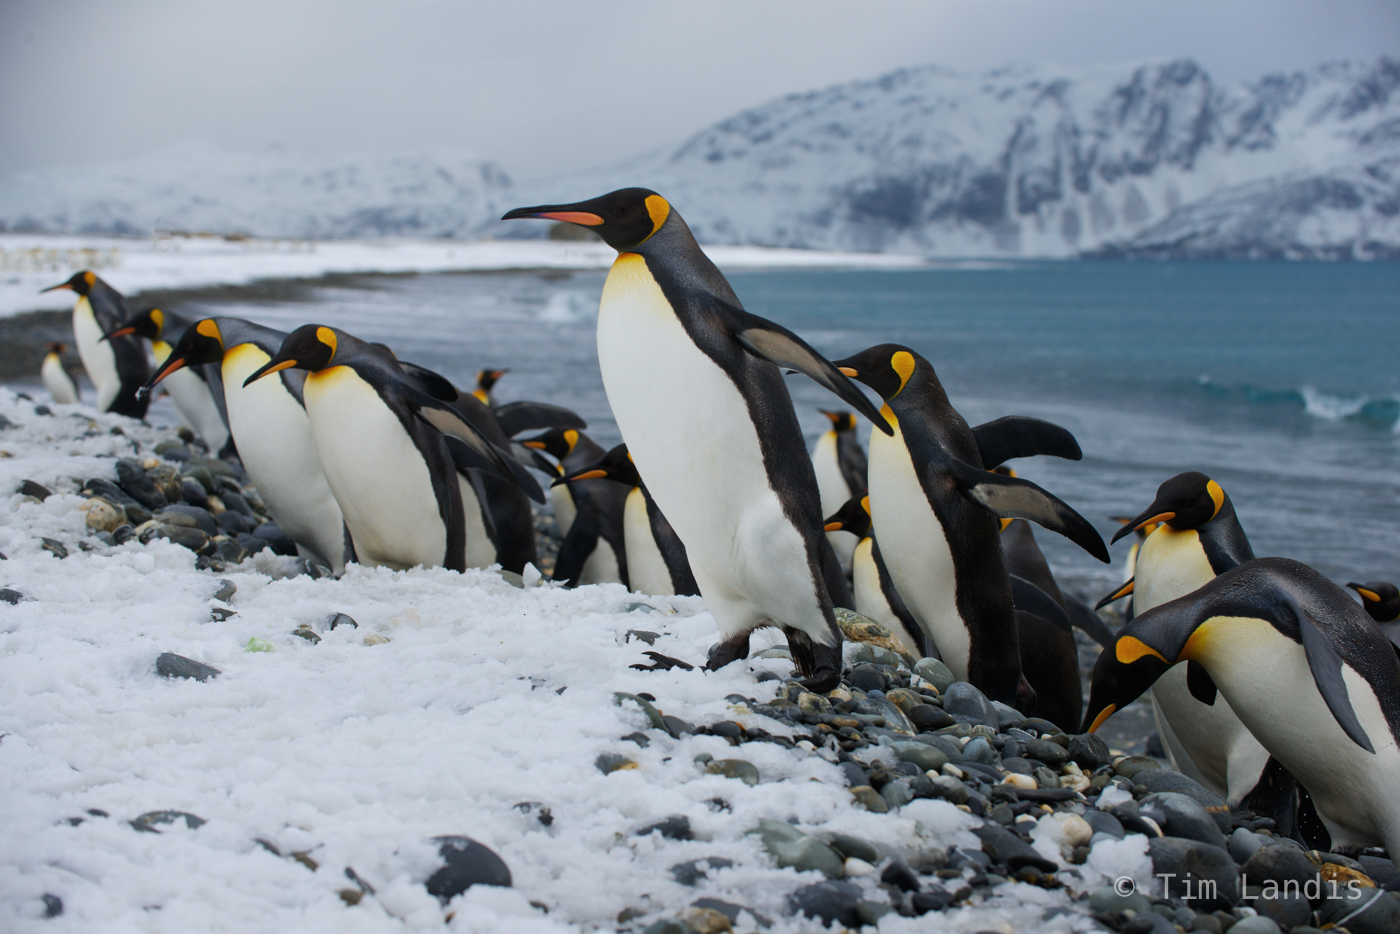 King penguins, determination, penguins activities, penguins emerging from the sea, south georgia islands, teamwork, photo